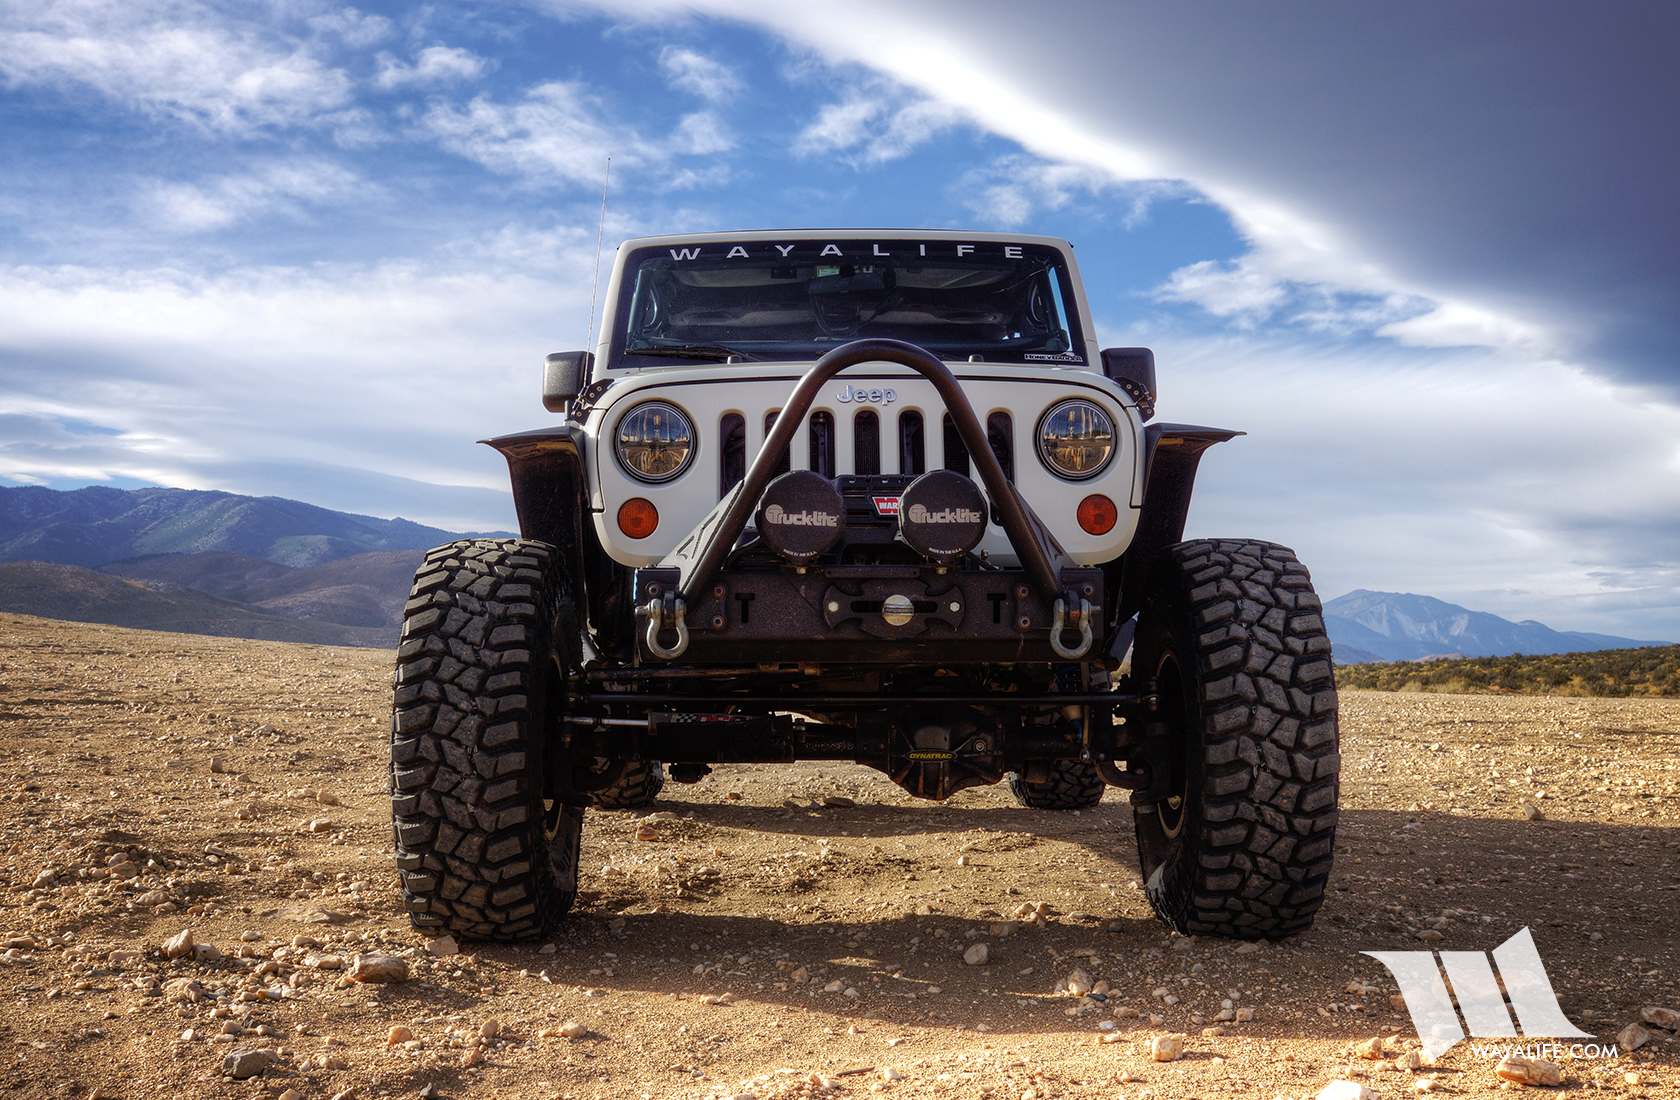 Jeep Wrangler 2018 Unlimited >> NEW Shoes for MOBY : 40x13.50R17 Cooper Discoverer STT Pro M/T Tires